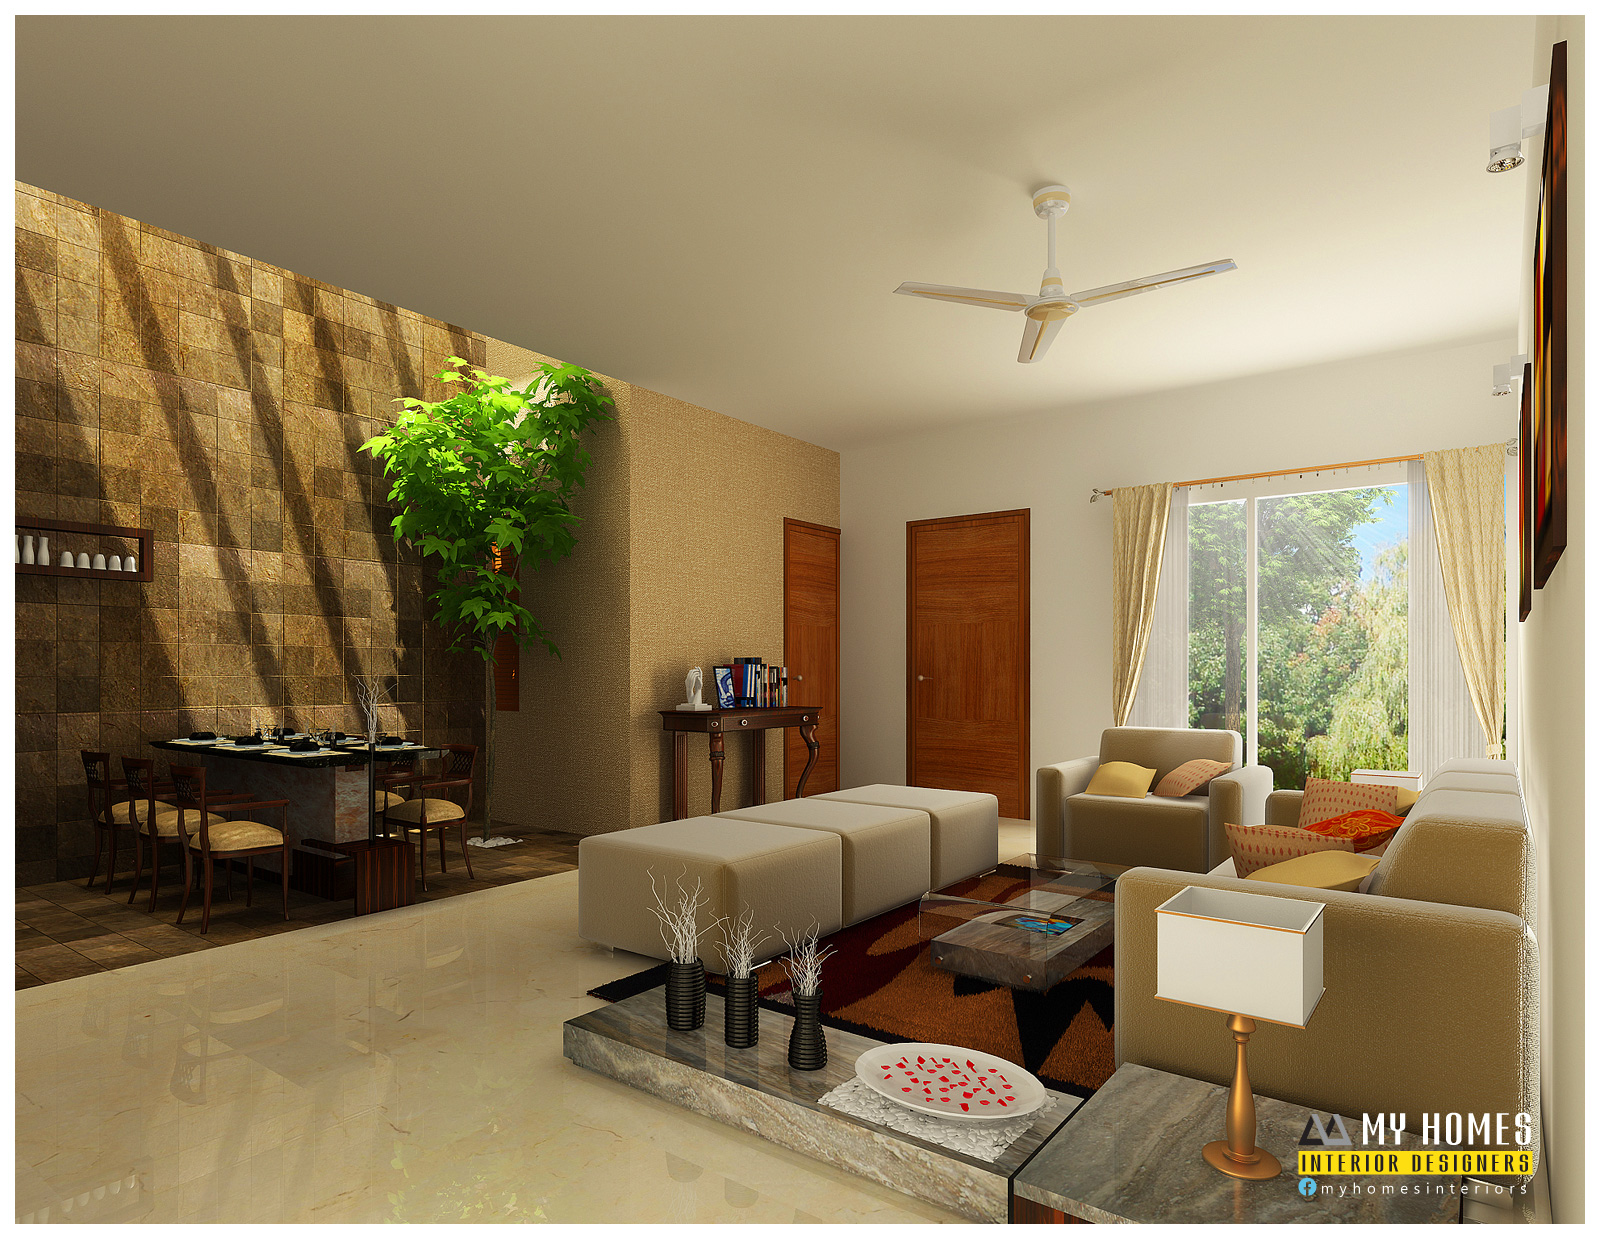 Kerala interior design ideas from designing company thrissur for Home interior design photo gallery